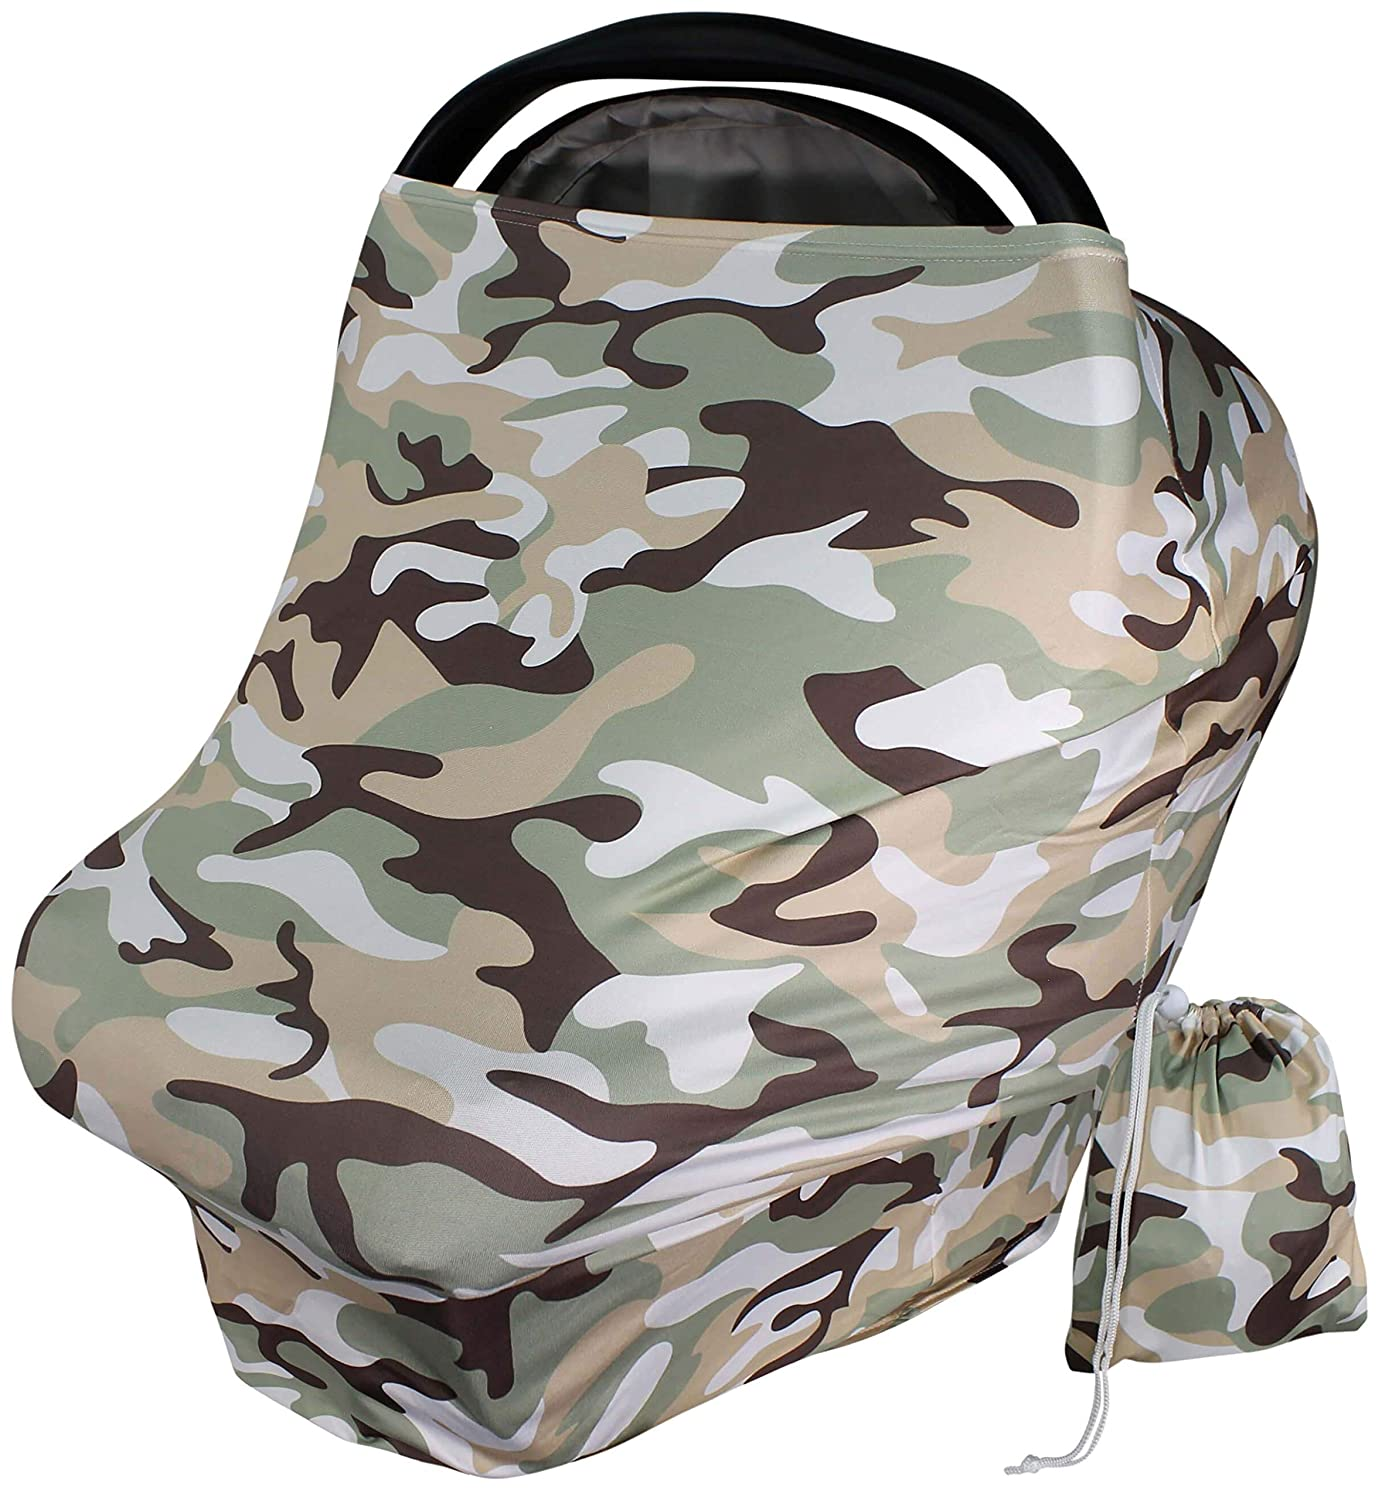 Baby Car Seat Cover Canopy - Olive Green Camo